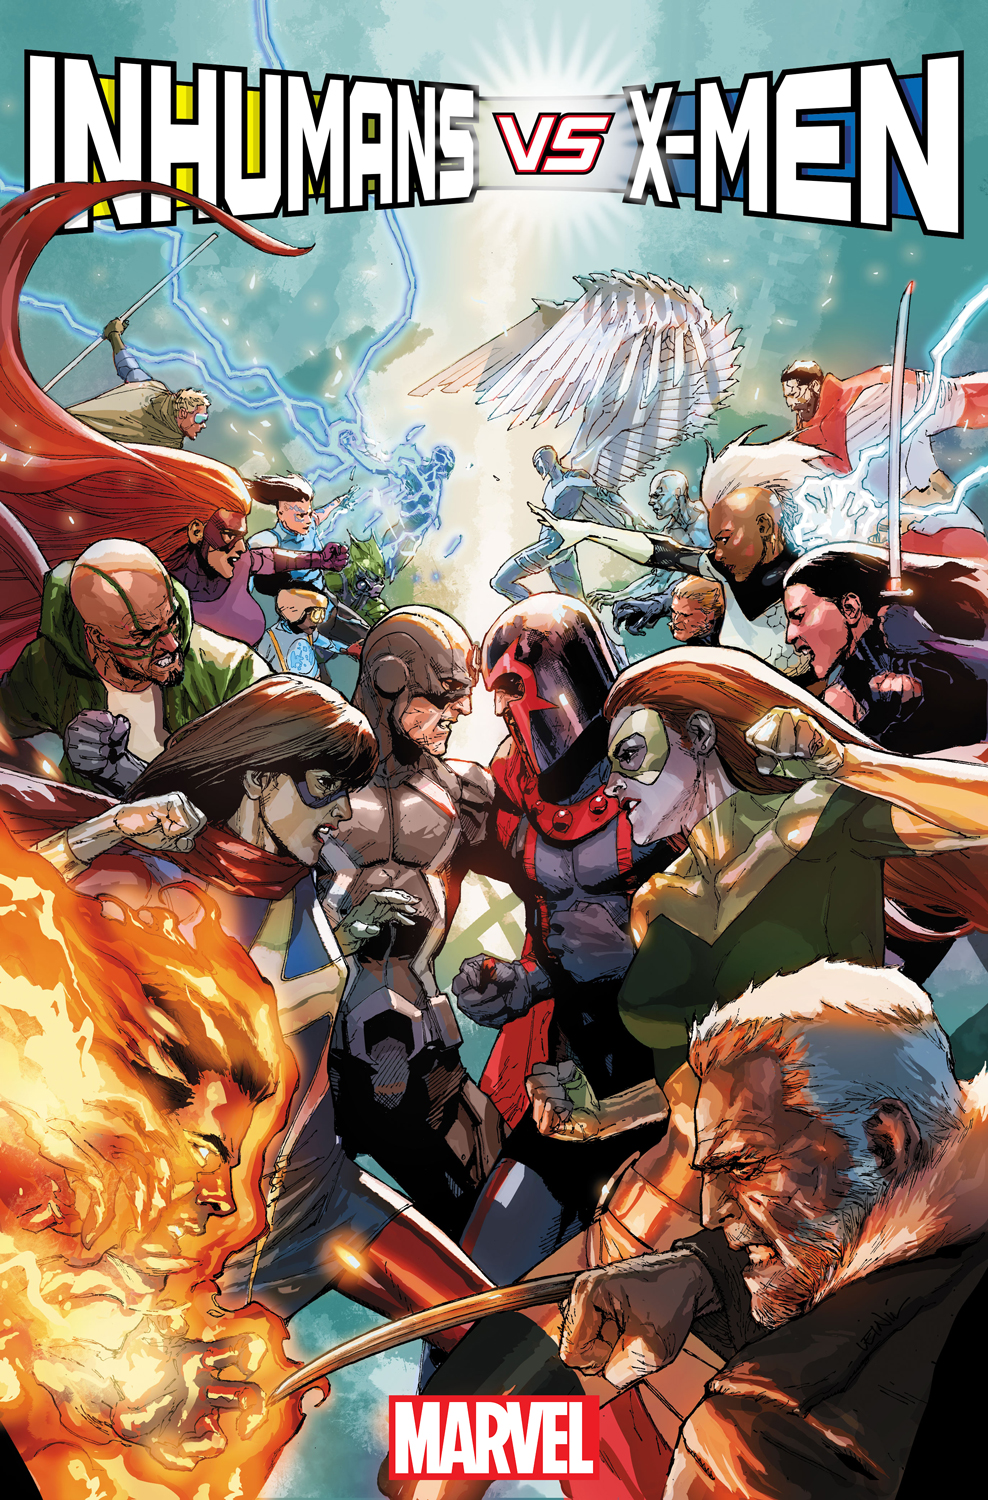 The War for Survival Begins in Your First Look at INHUMANS VS. X-MEN #1!